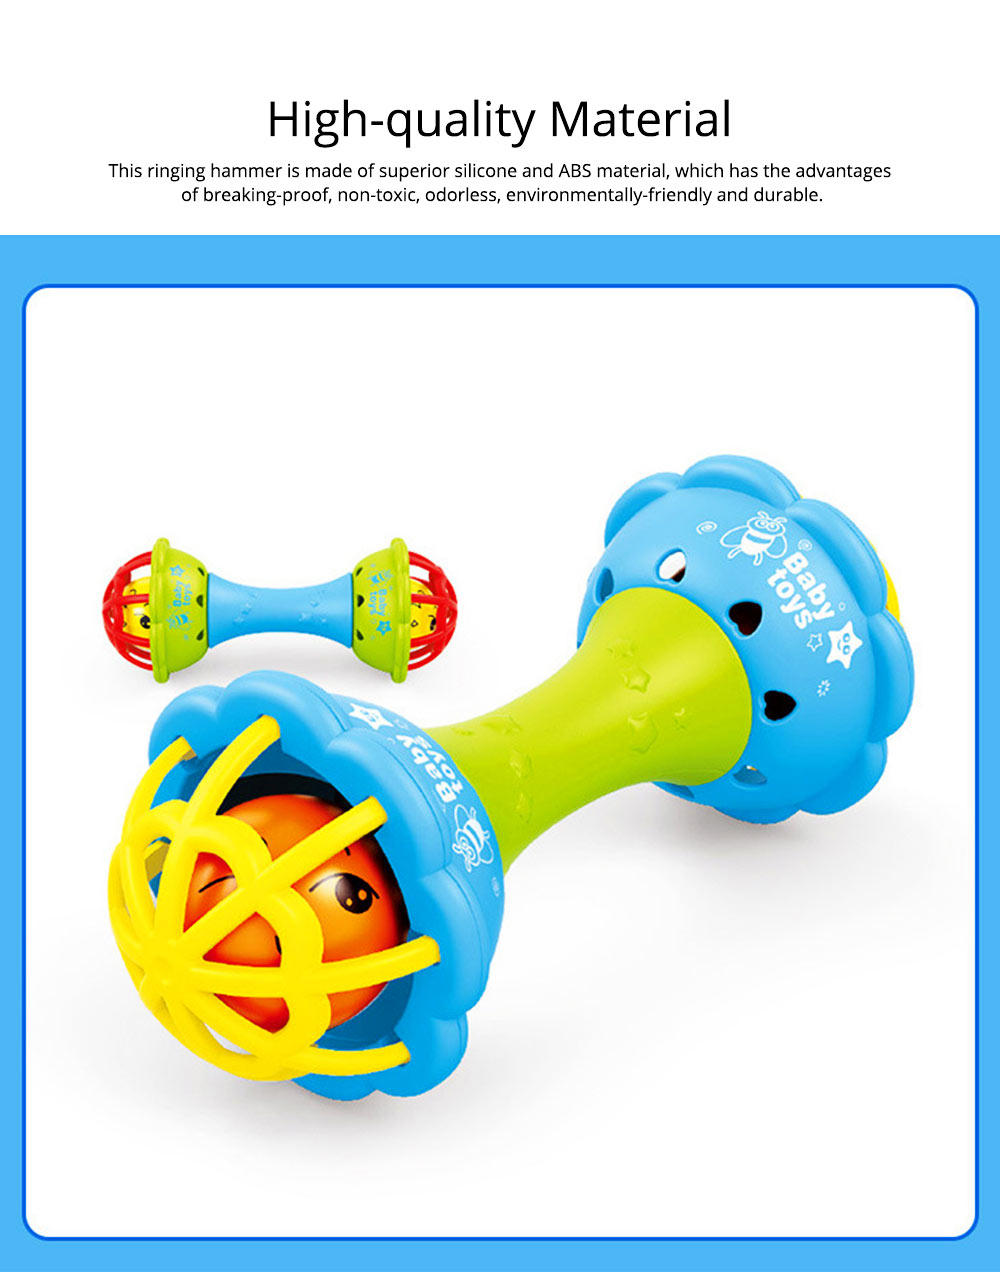 Soft Silicone Teether Plastic Hand Bell Hammer, Solid ABS Handbell Rattle Babies Early Education Toy 1